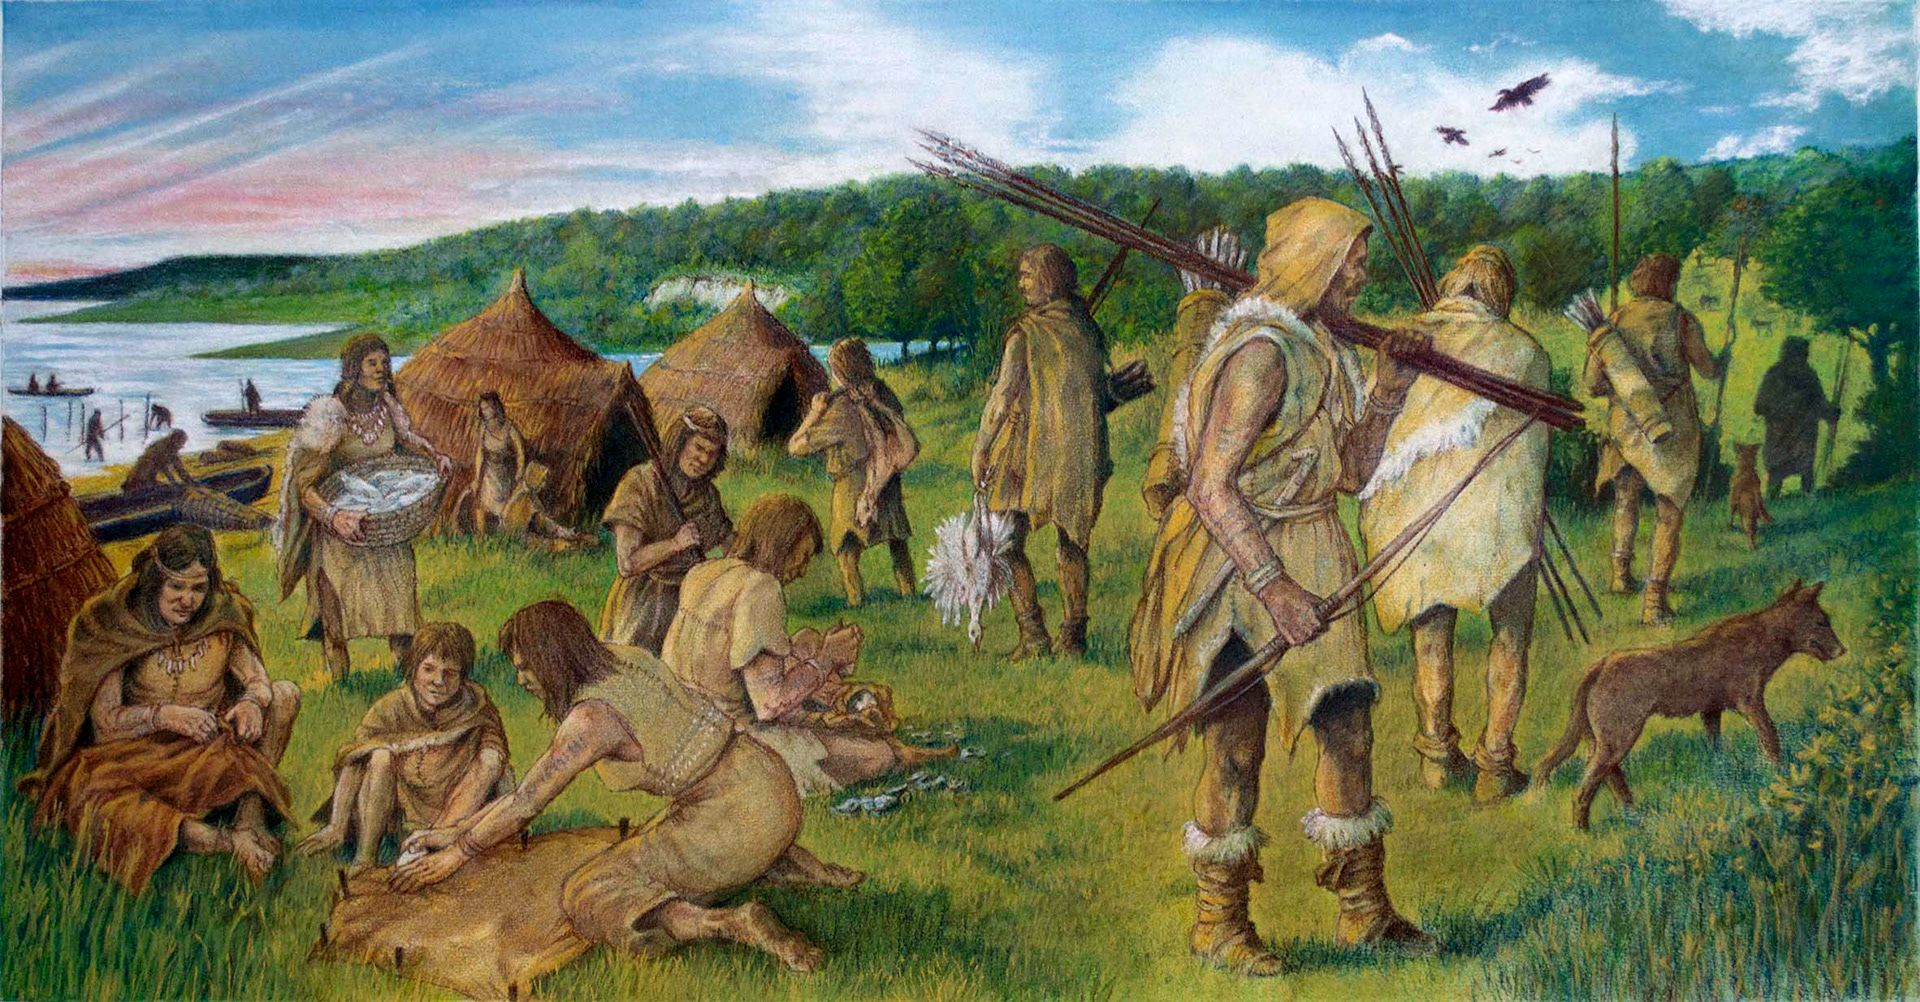 A depiction of a Mesolithic hunter-gatherer community